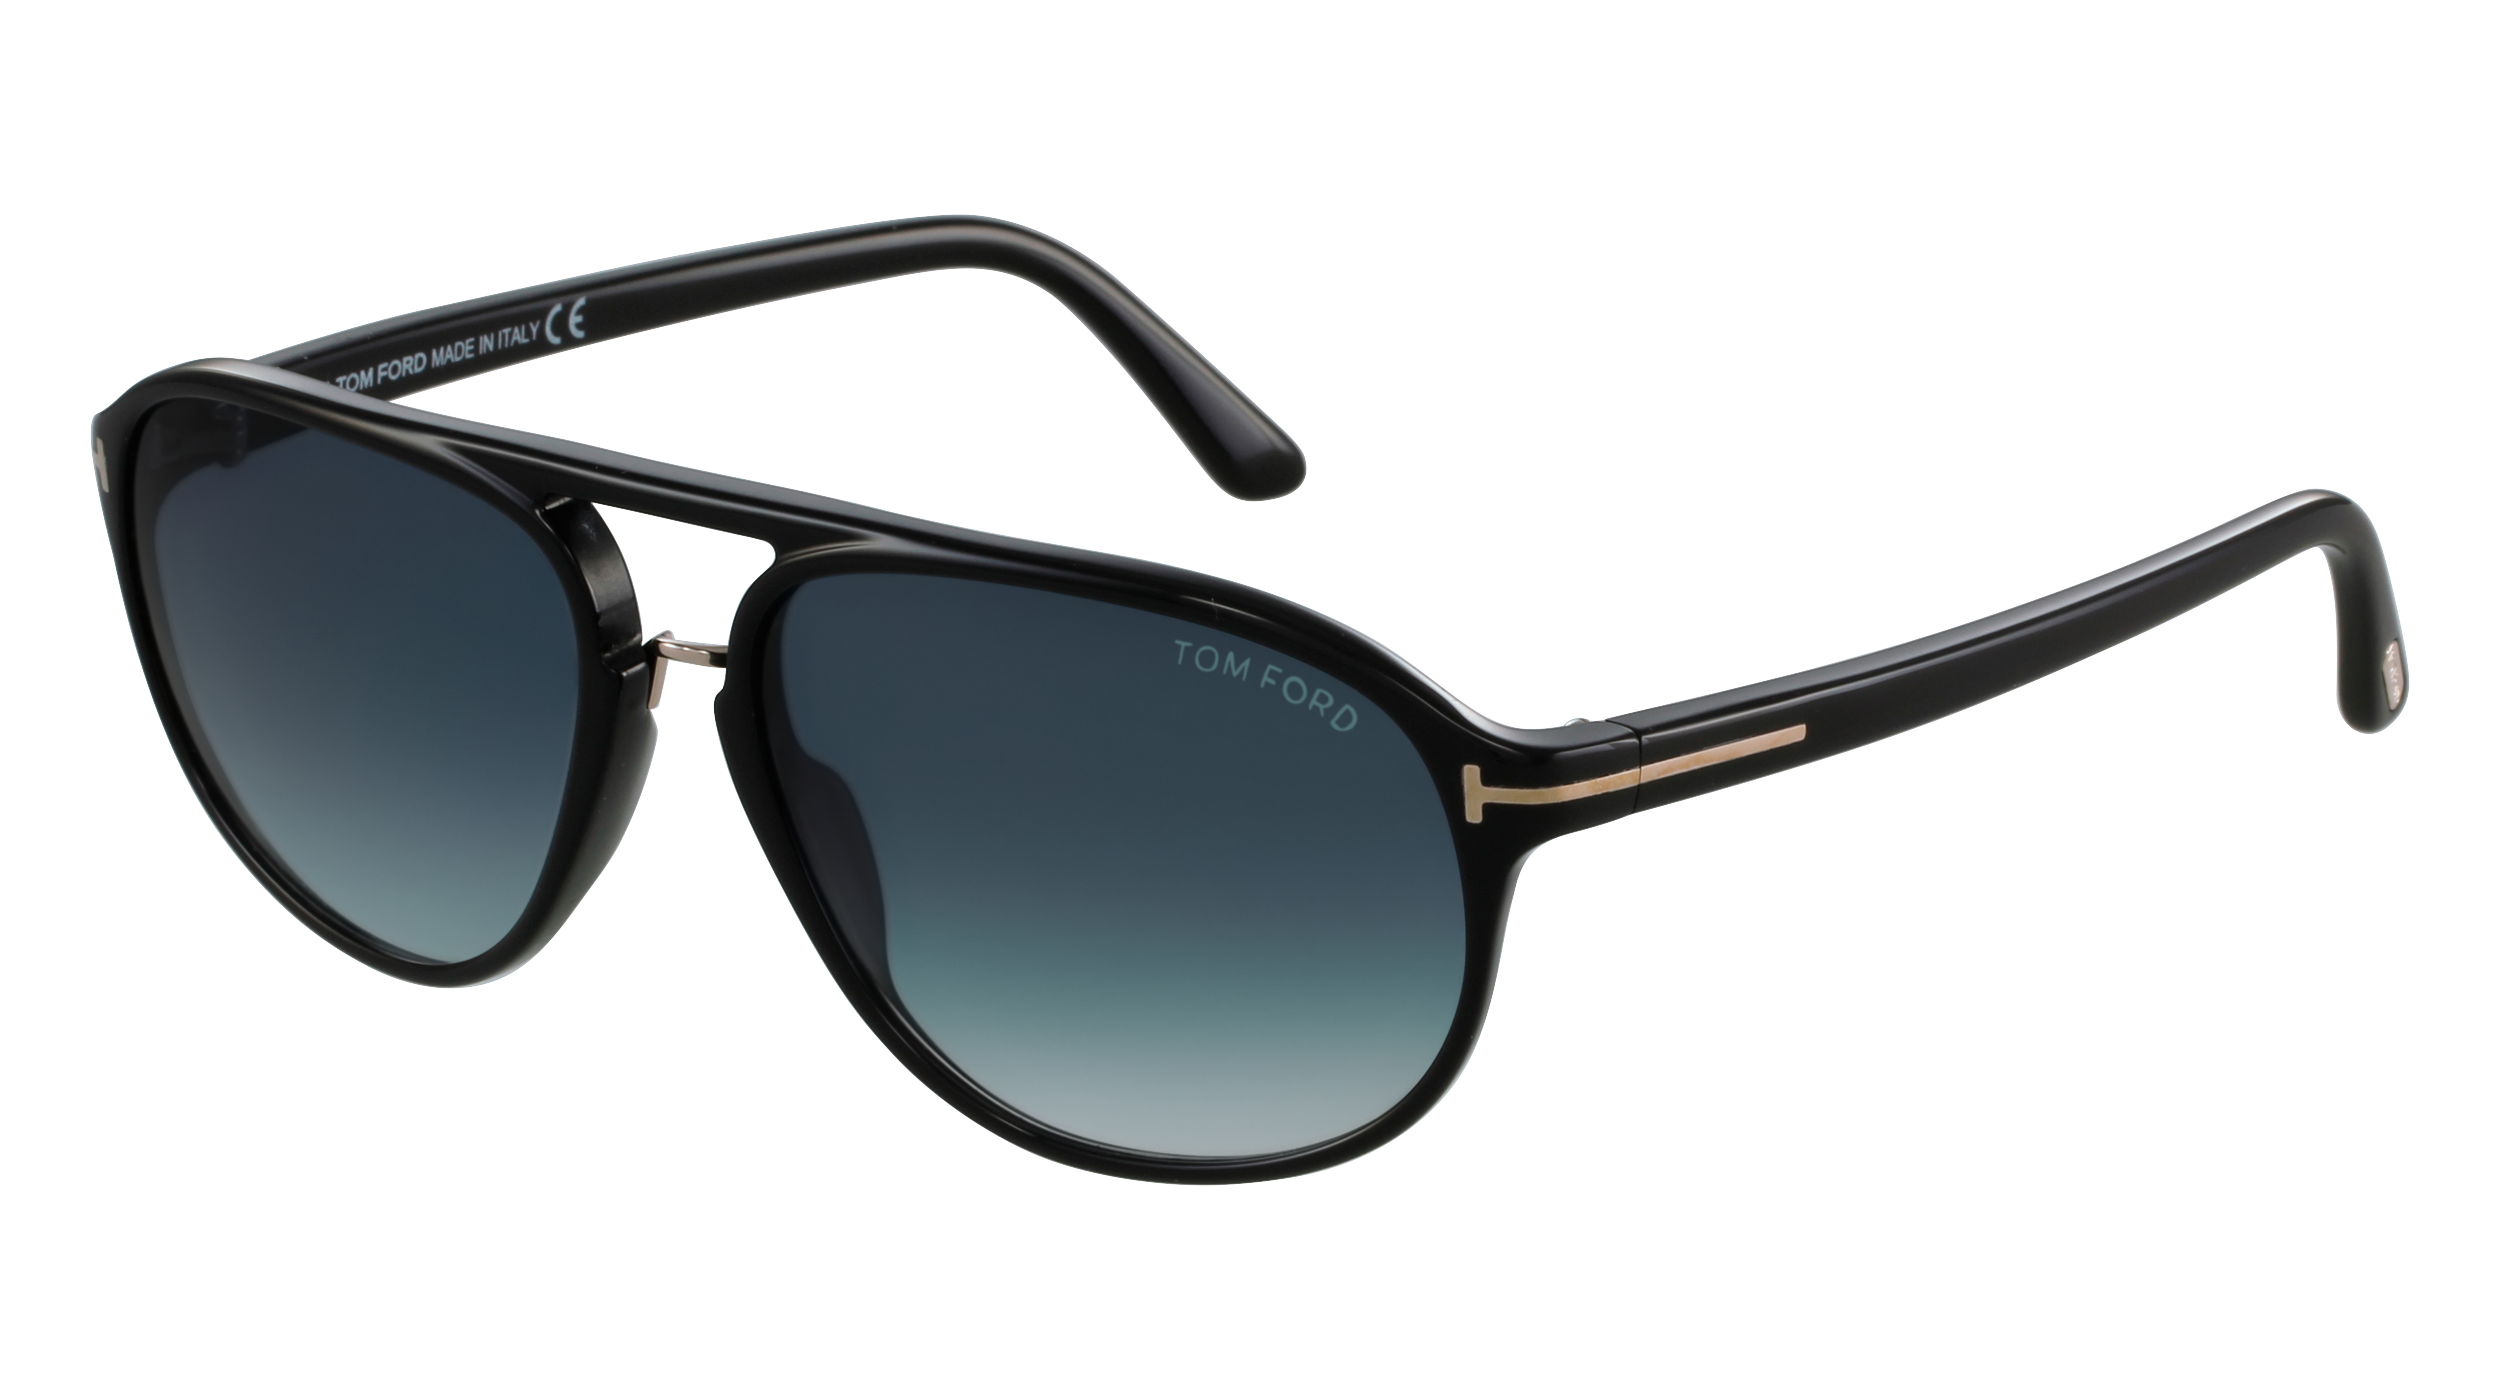 Tom Ford FT0447-S-01P-60-15-140